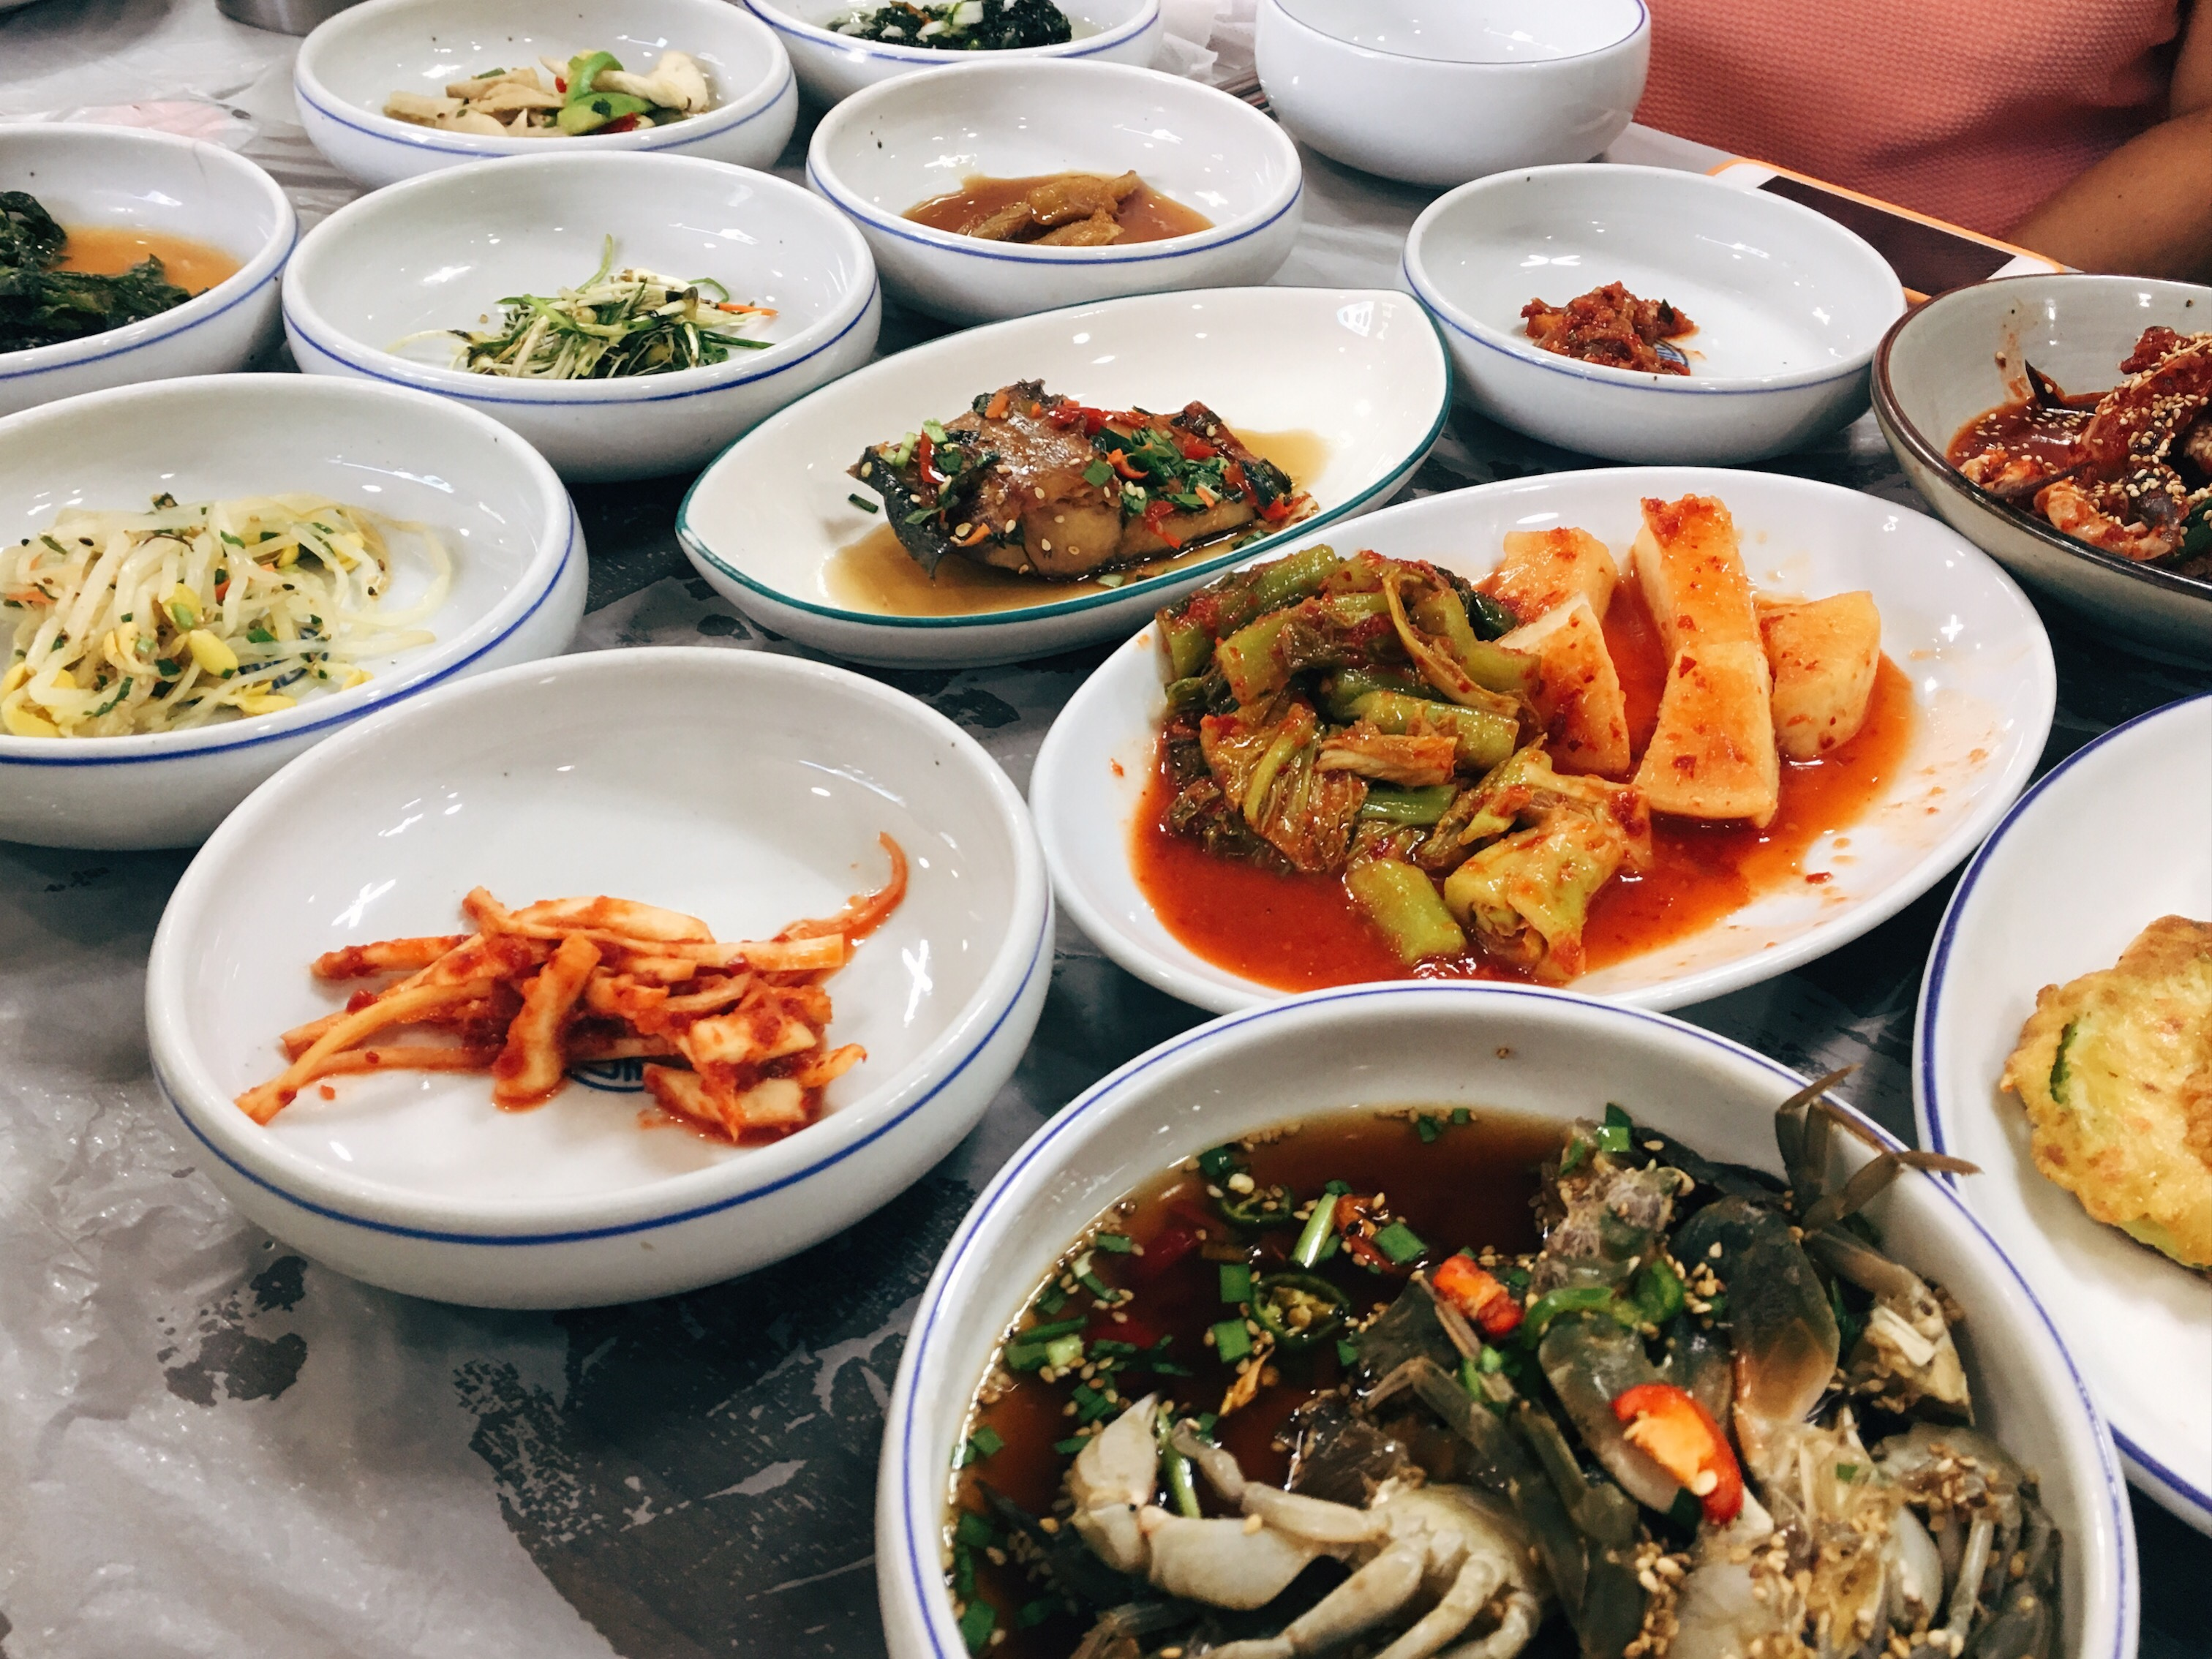 26b2ae52 6627 4ca7 b863 a19e27537afd - WoW Korea Winter Wonderland Day 3: The Flavours of Yeosu City